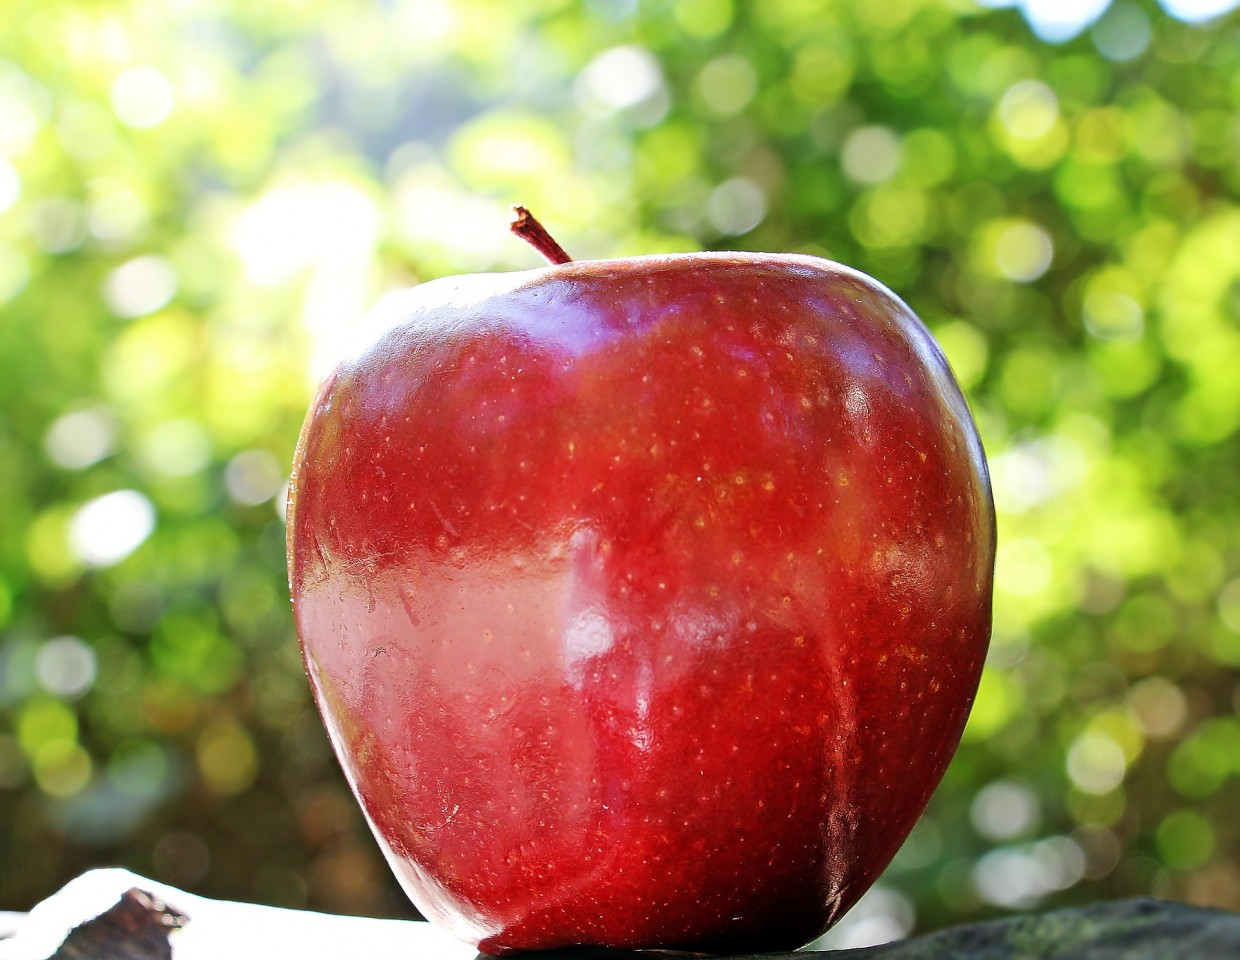 Apples Provide Powerful Health Benefits